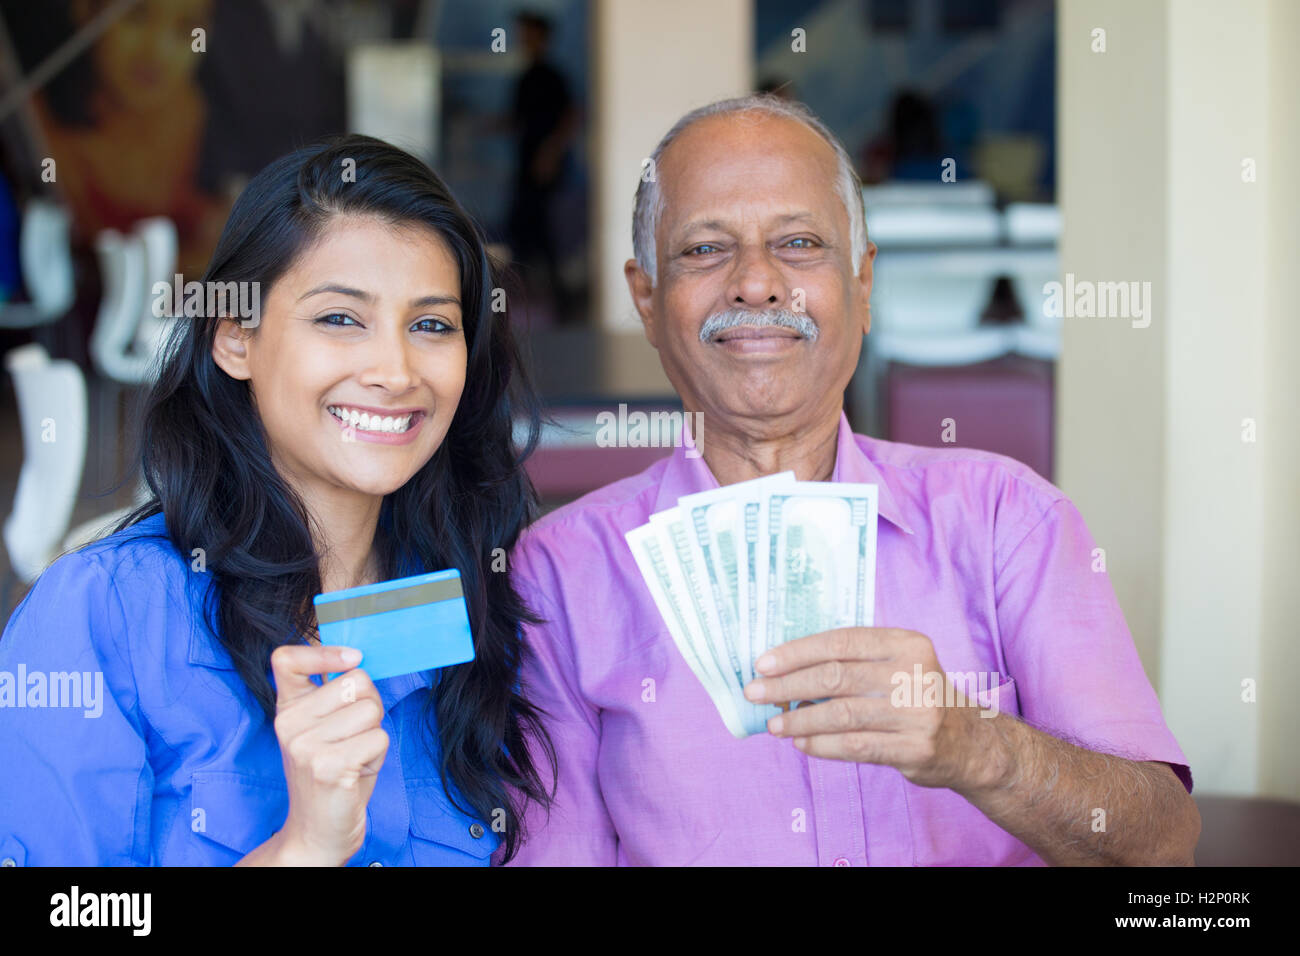 Closeup portrait rich elderly gentleman in pink shirt and lady in blue top holding greenbacks and credit card. Booming - Stock Image